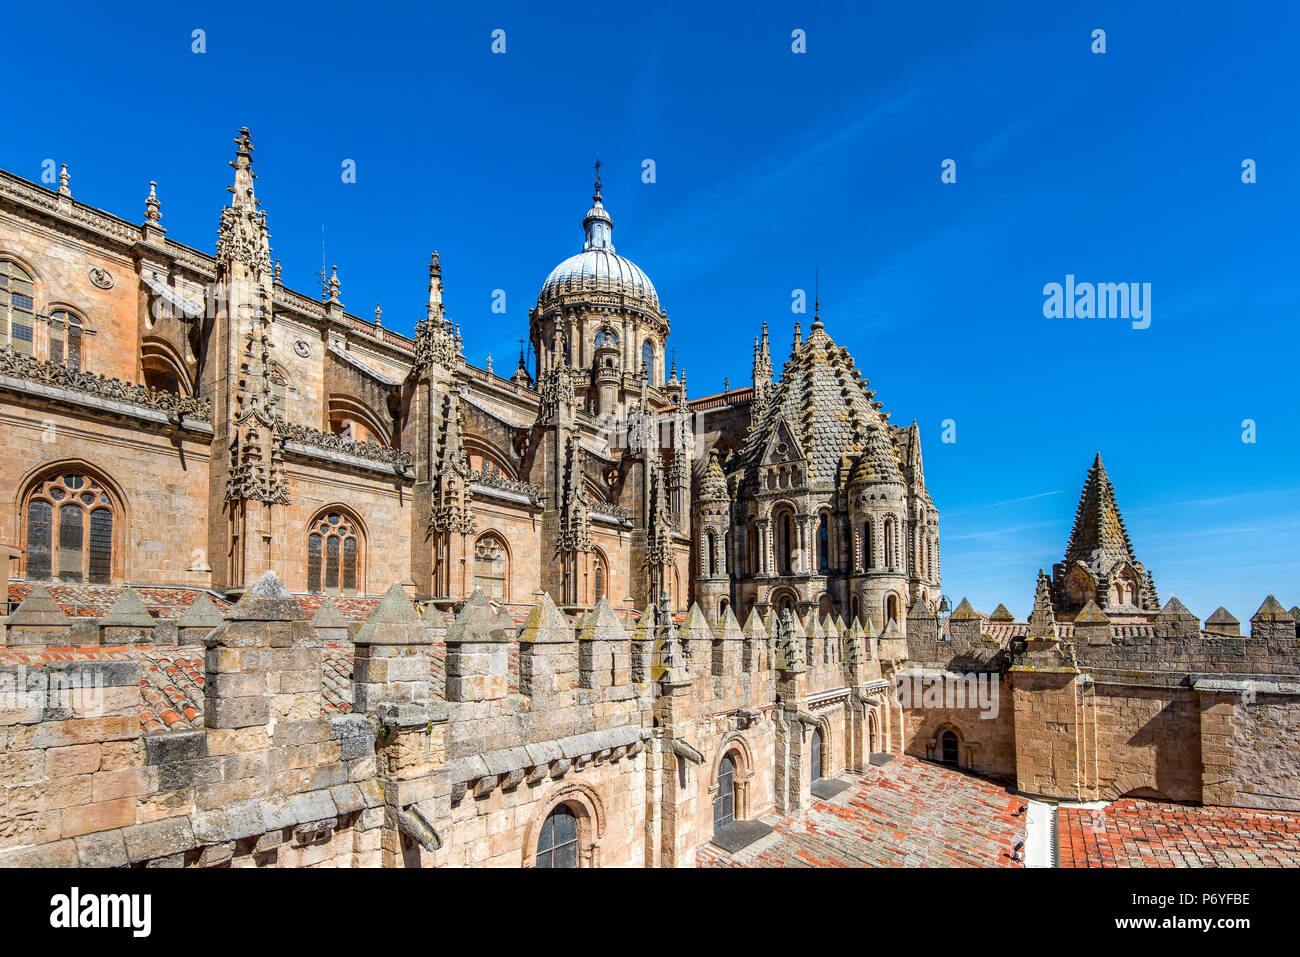 Old Cathedral, Salamanca, Castile and Leon, Spain - Stock Image